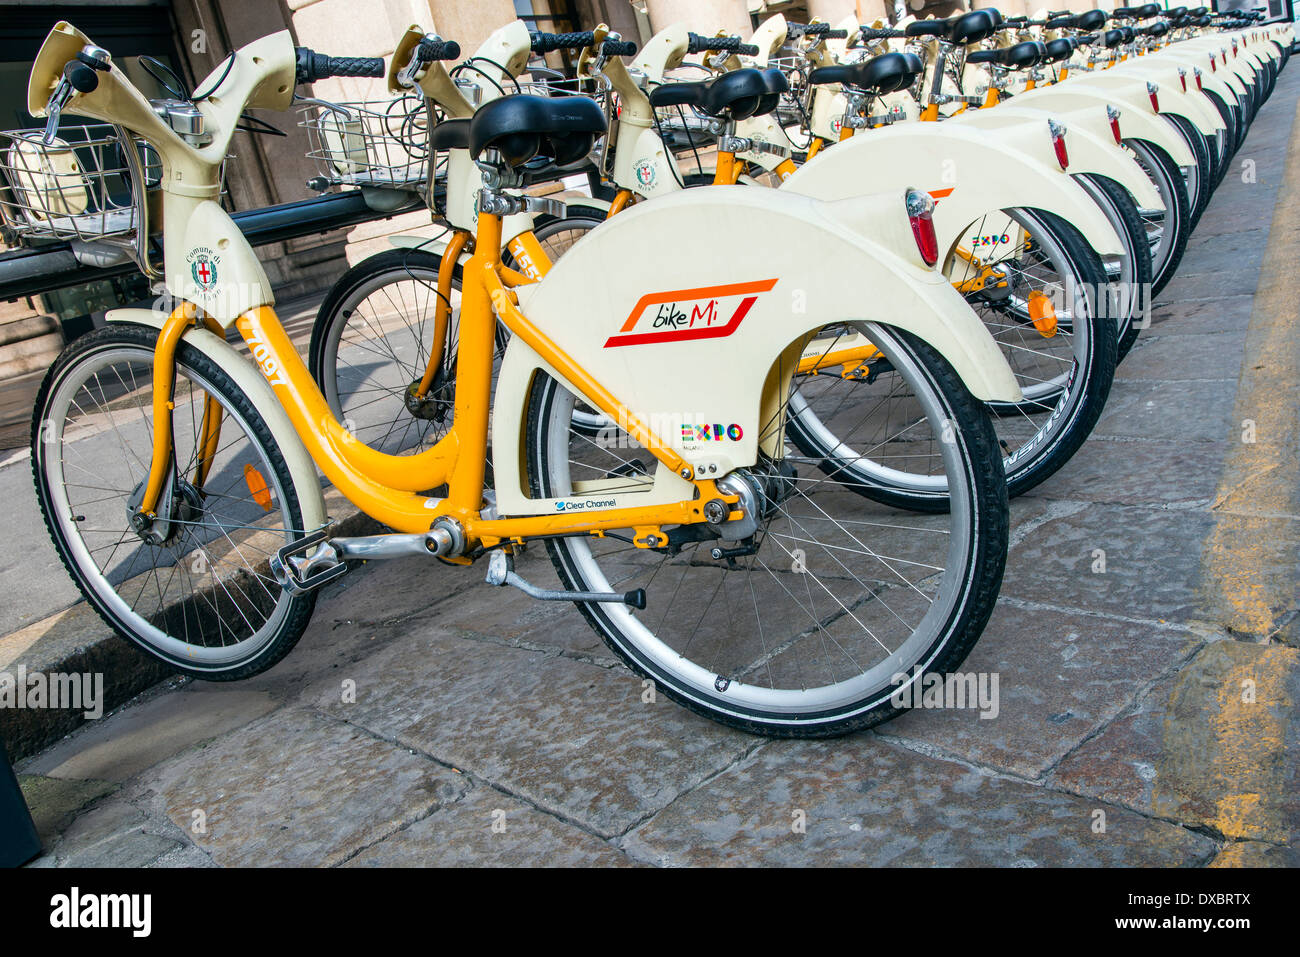 Parked renting bikes in Milan, Lombardy, Italy - Stock Image